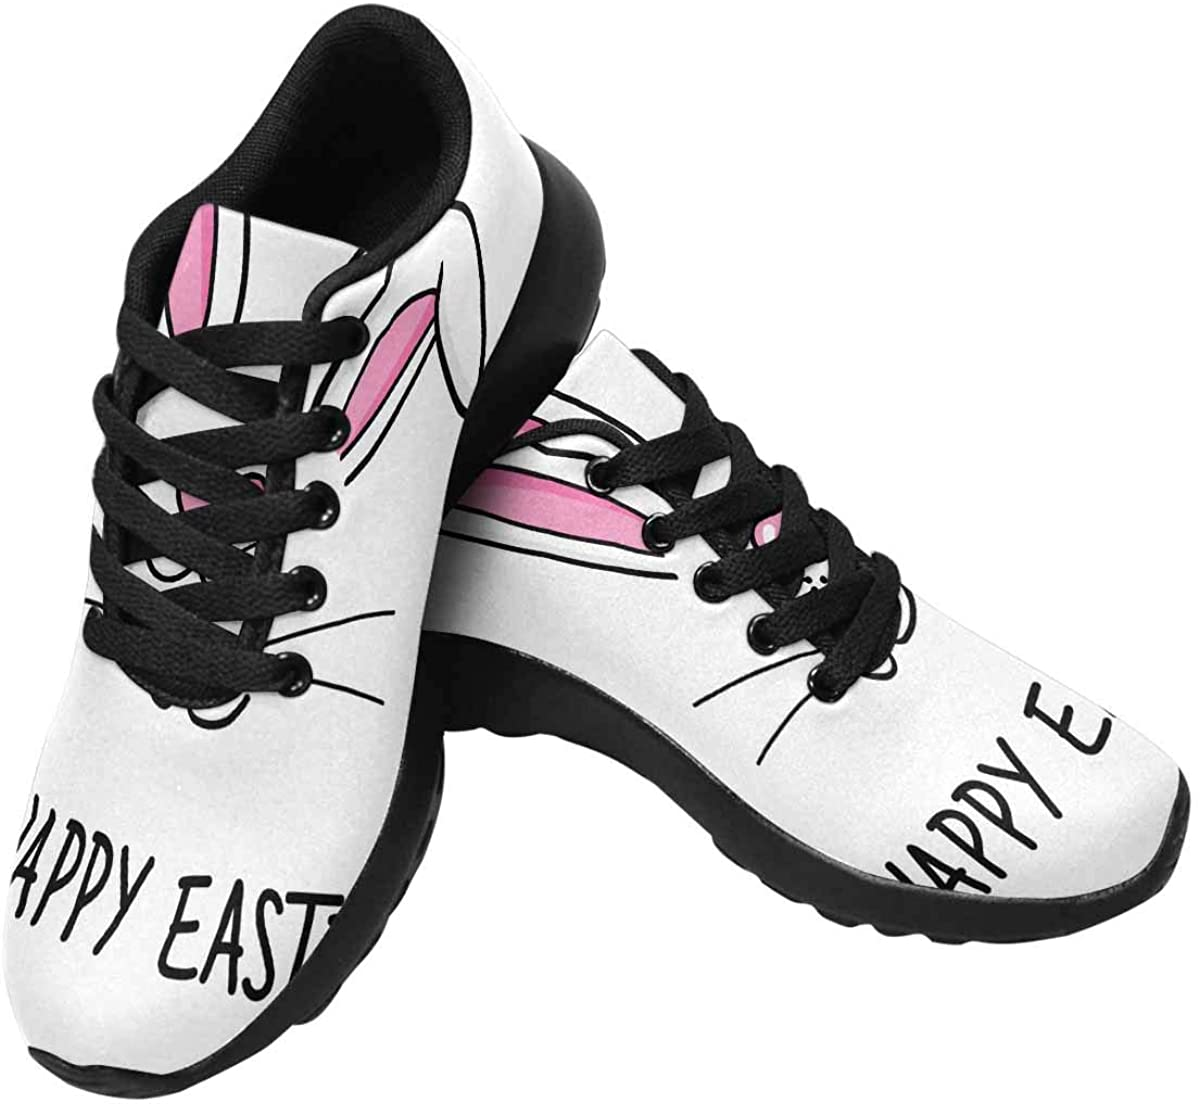 InterestPrint Face of Cute Easter Bunny Women's Running Shoes - Casual Breathable Athletic Tennis Sneakers